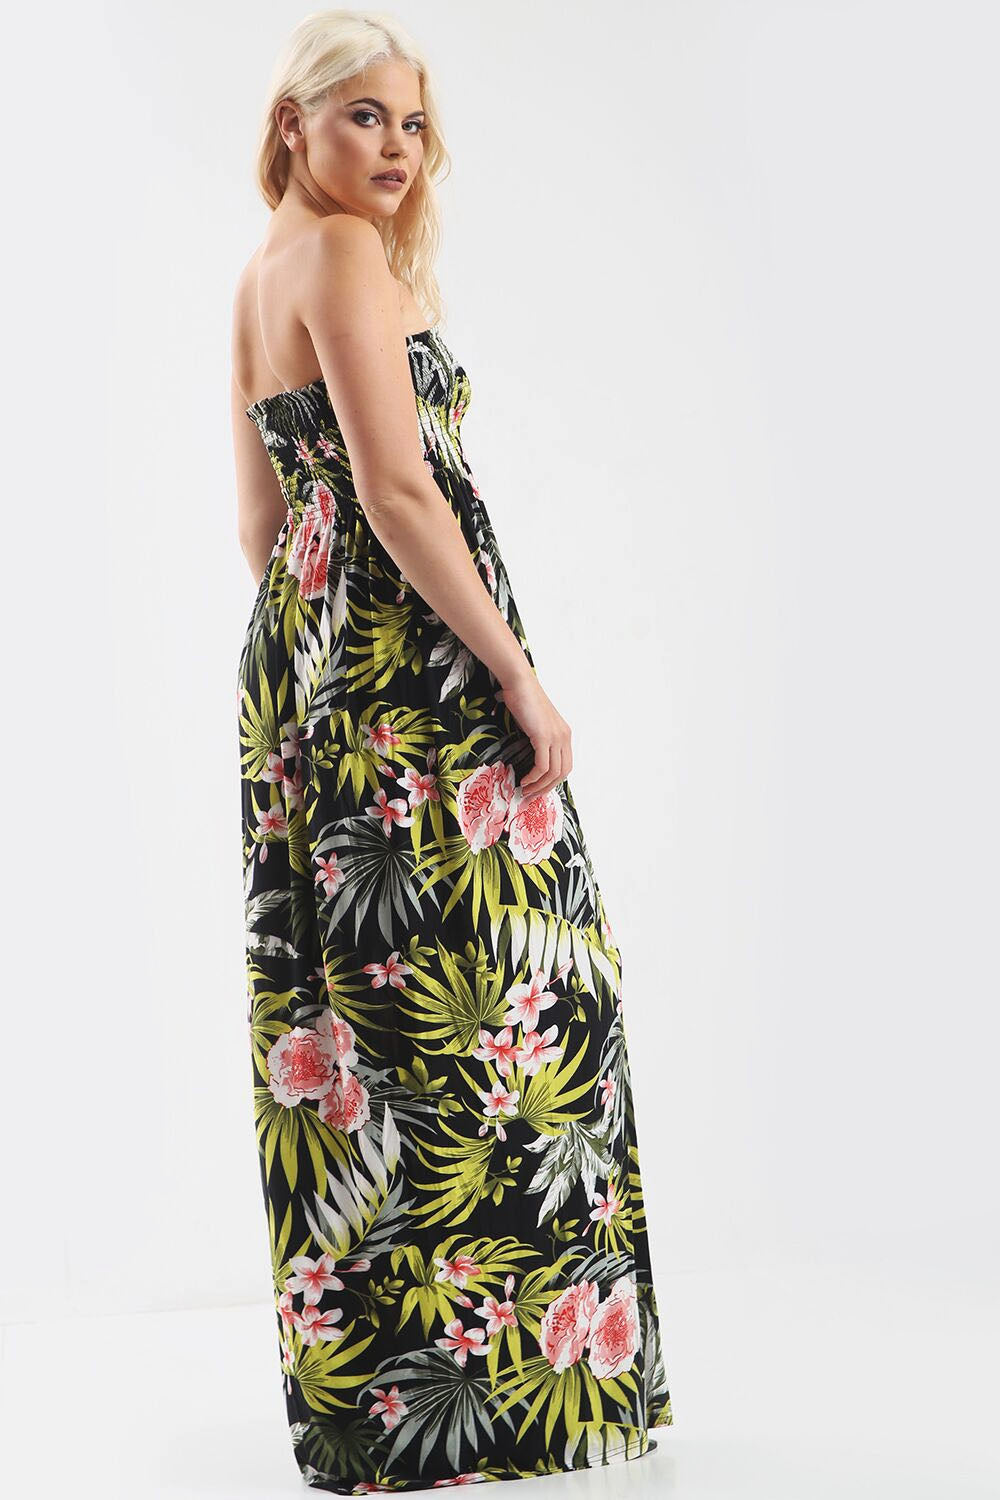 Green Leaf Tropical Print Strapless Maxi Dress - bejealous-com